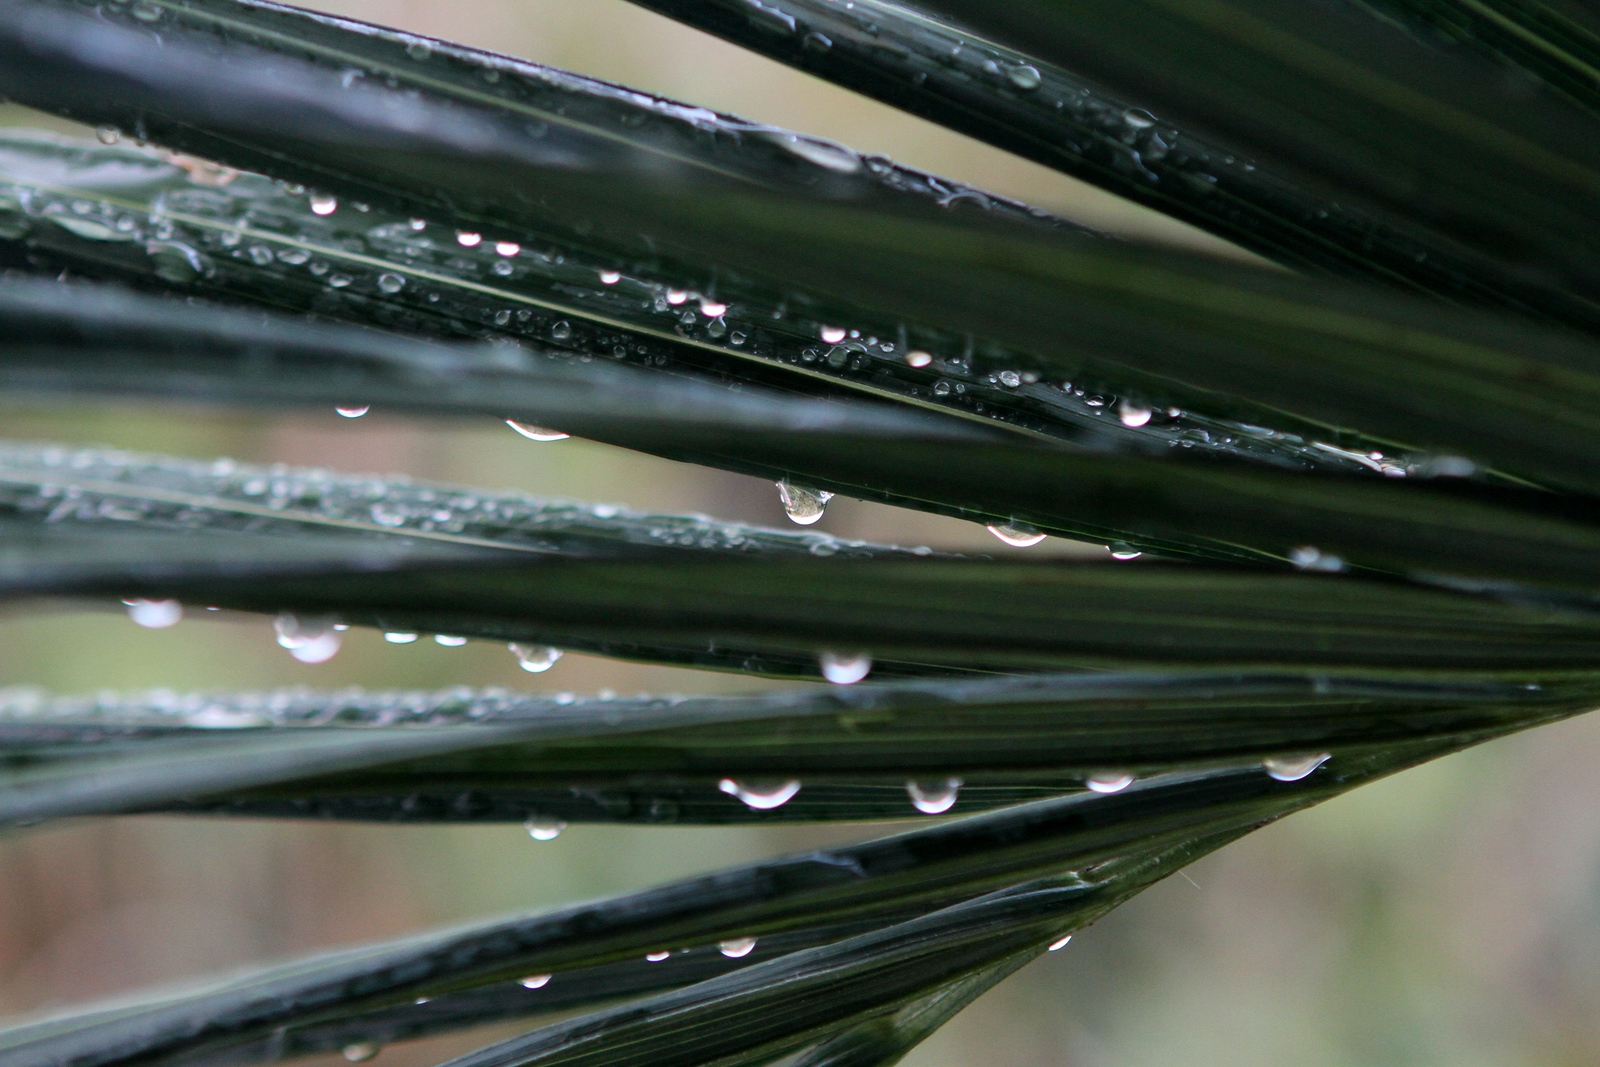 Raindrops taking a rest